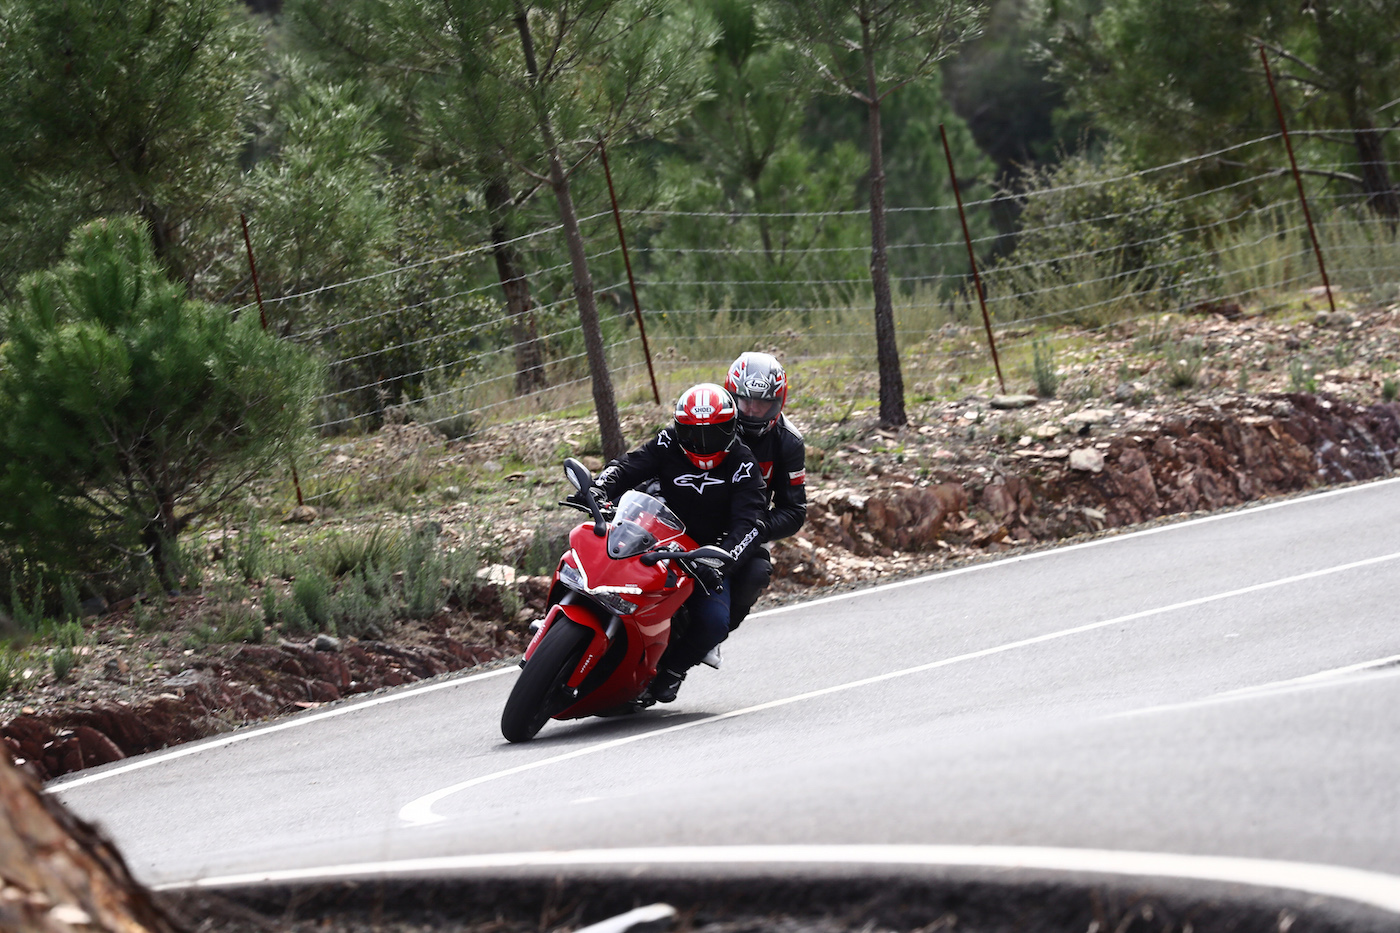 Ducati_Supersport_smalldeux20